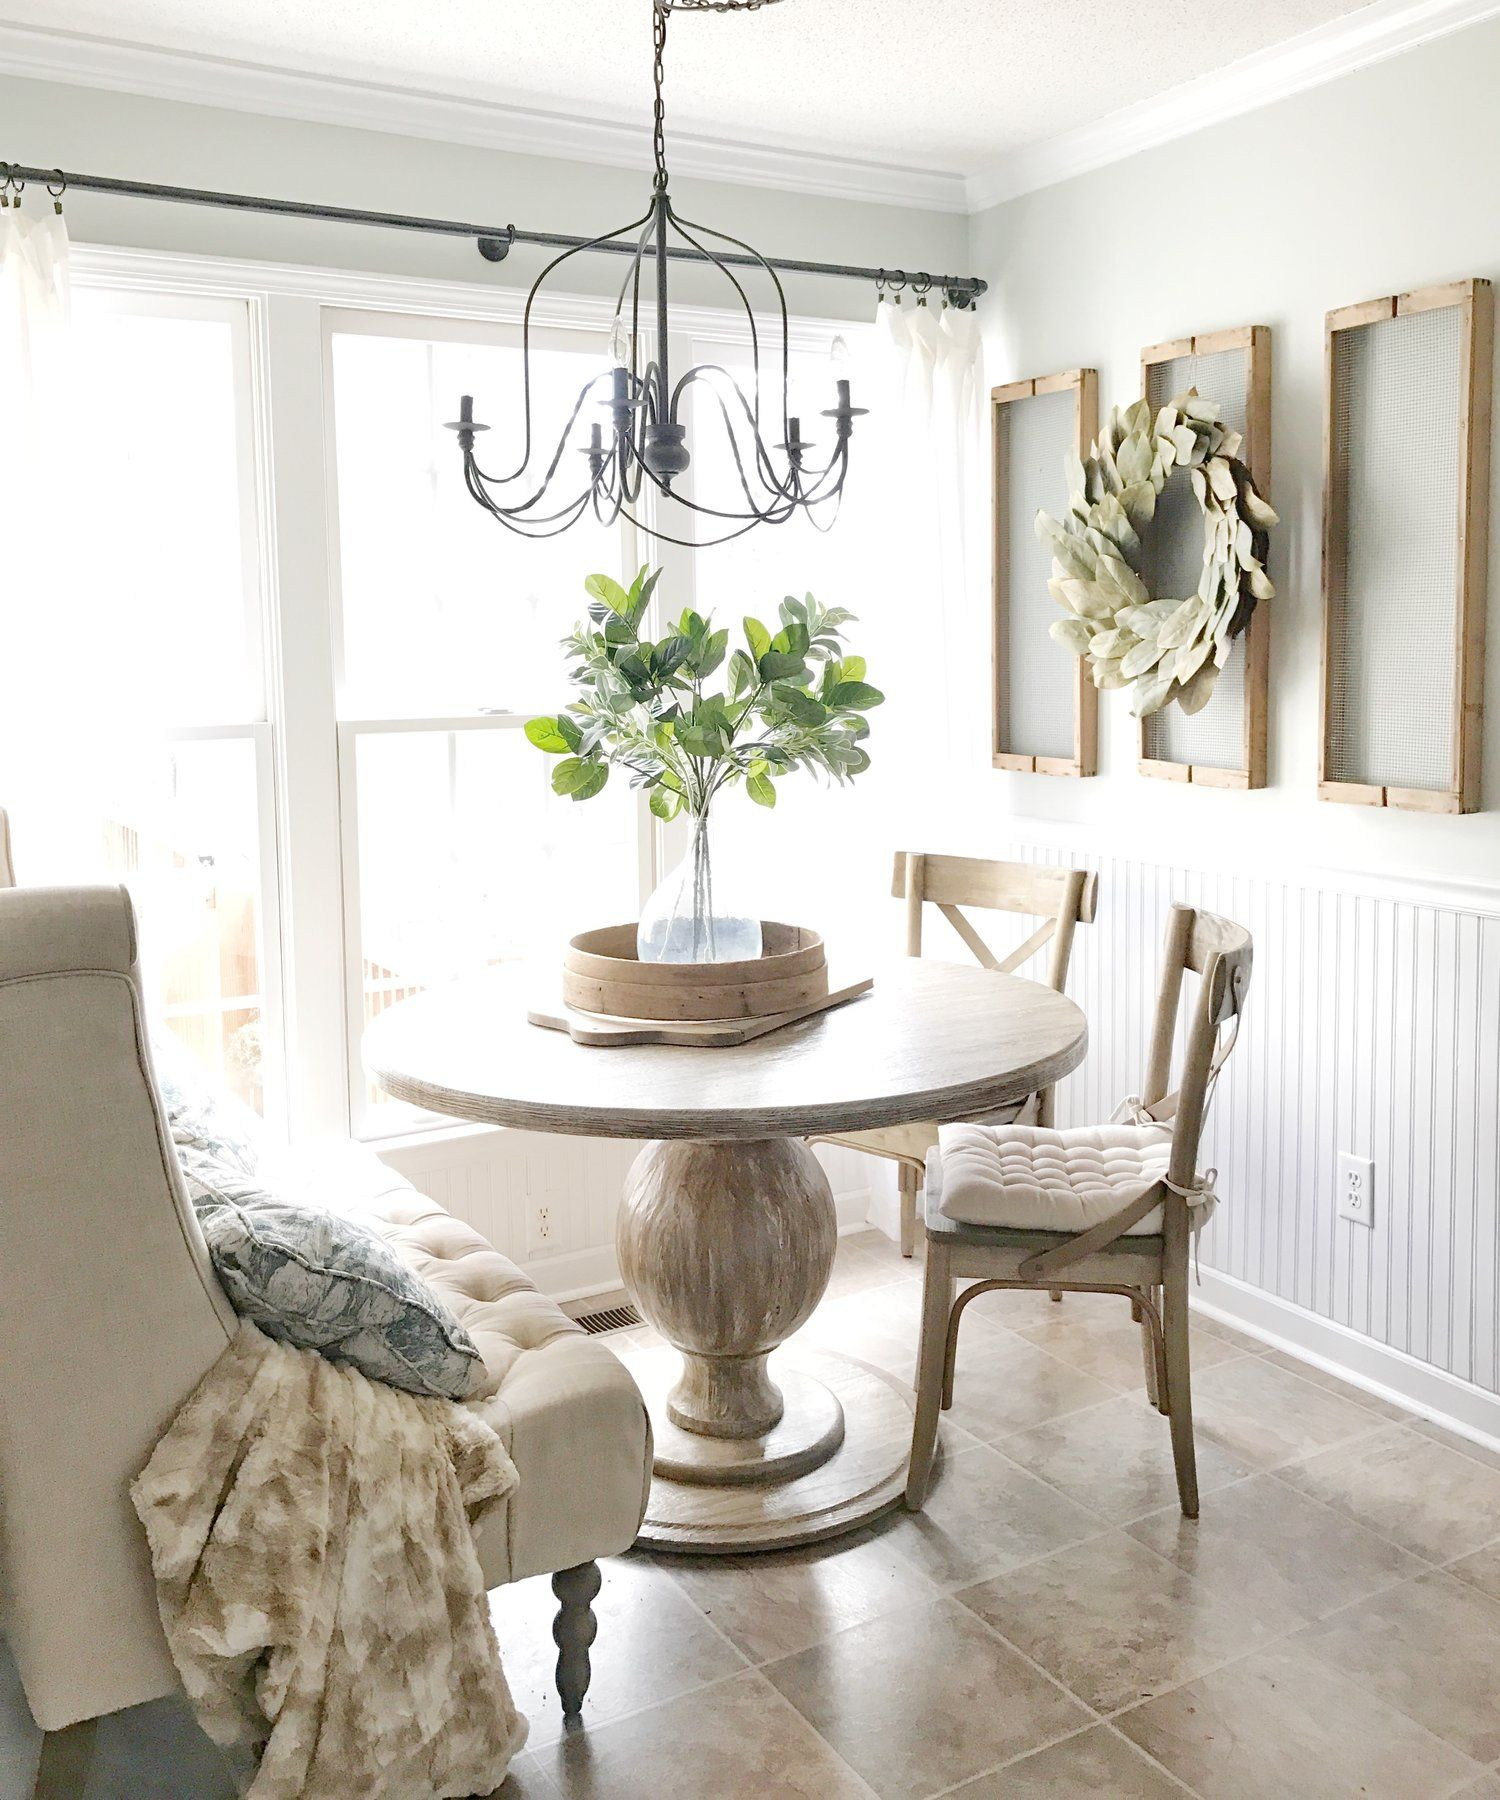 Home Tour- Farmhouse Style Breakfast Nook With Drying Rack